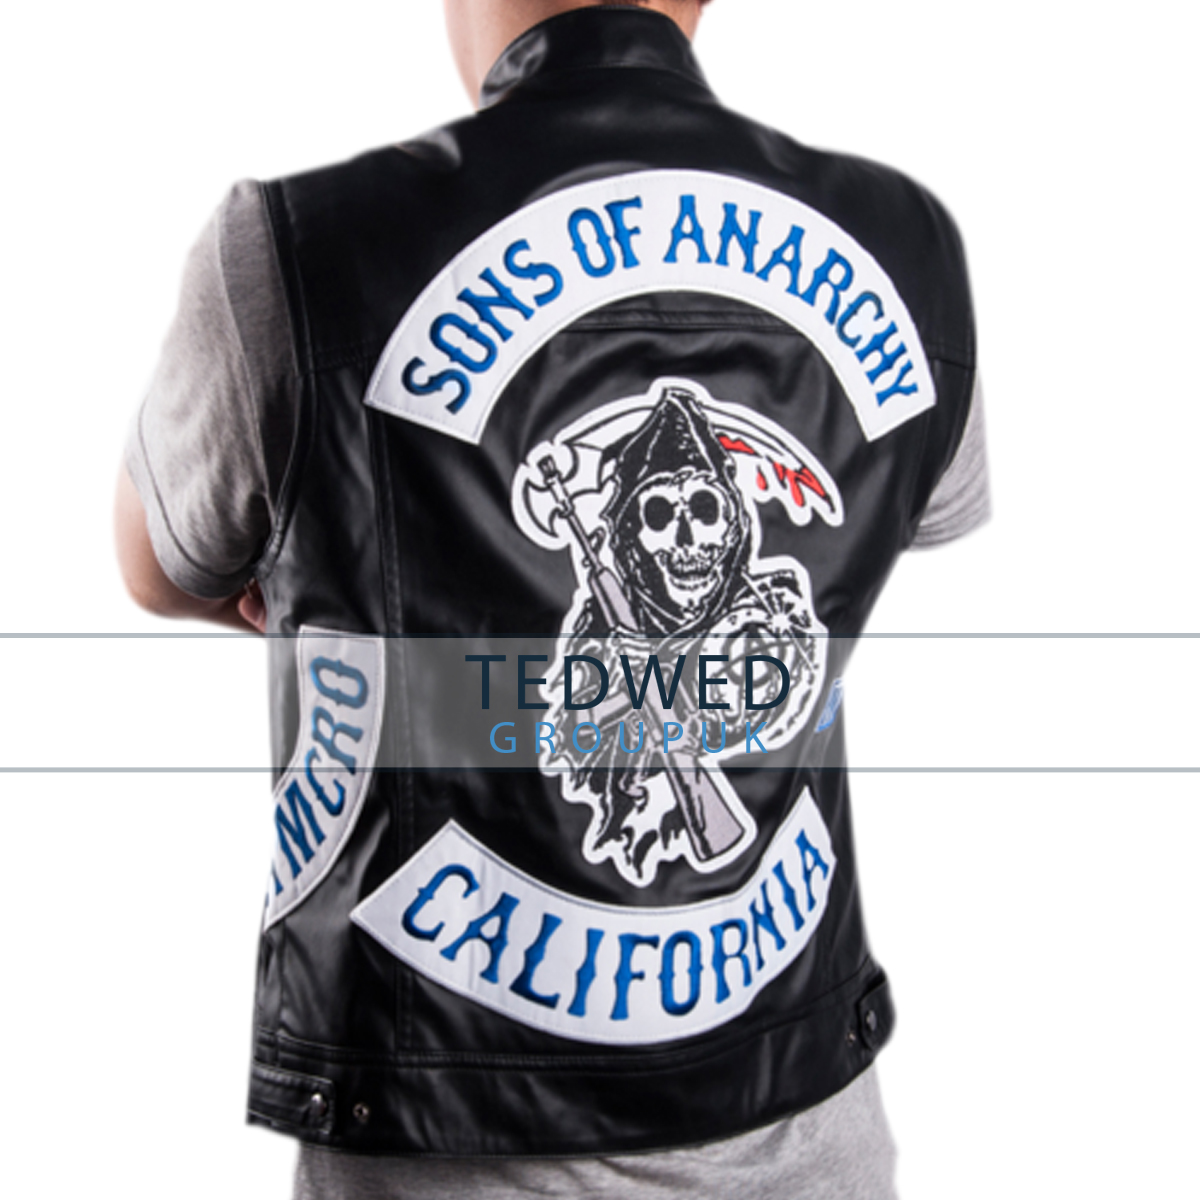 sons of anarchy jacket. Black Bedroom Furniture Sets. Home Design Ideas